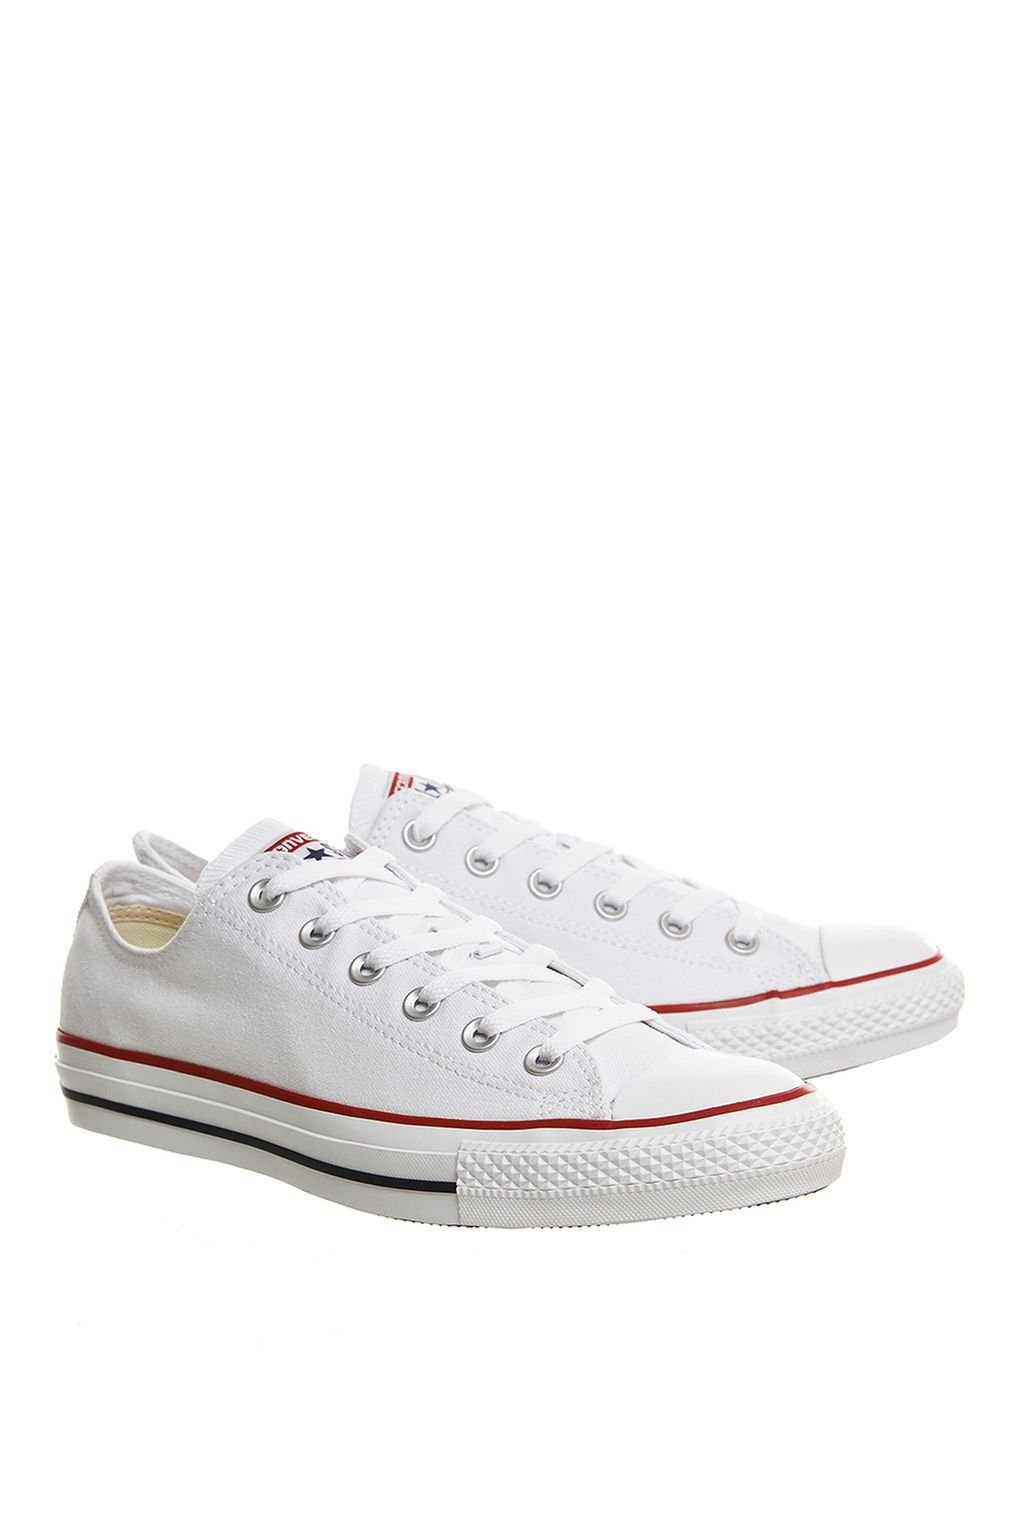 converse all star white low